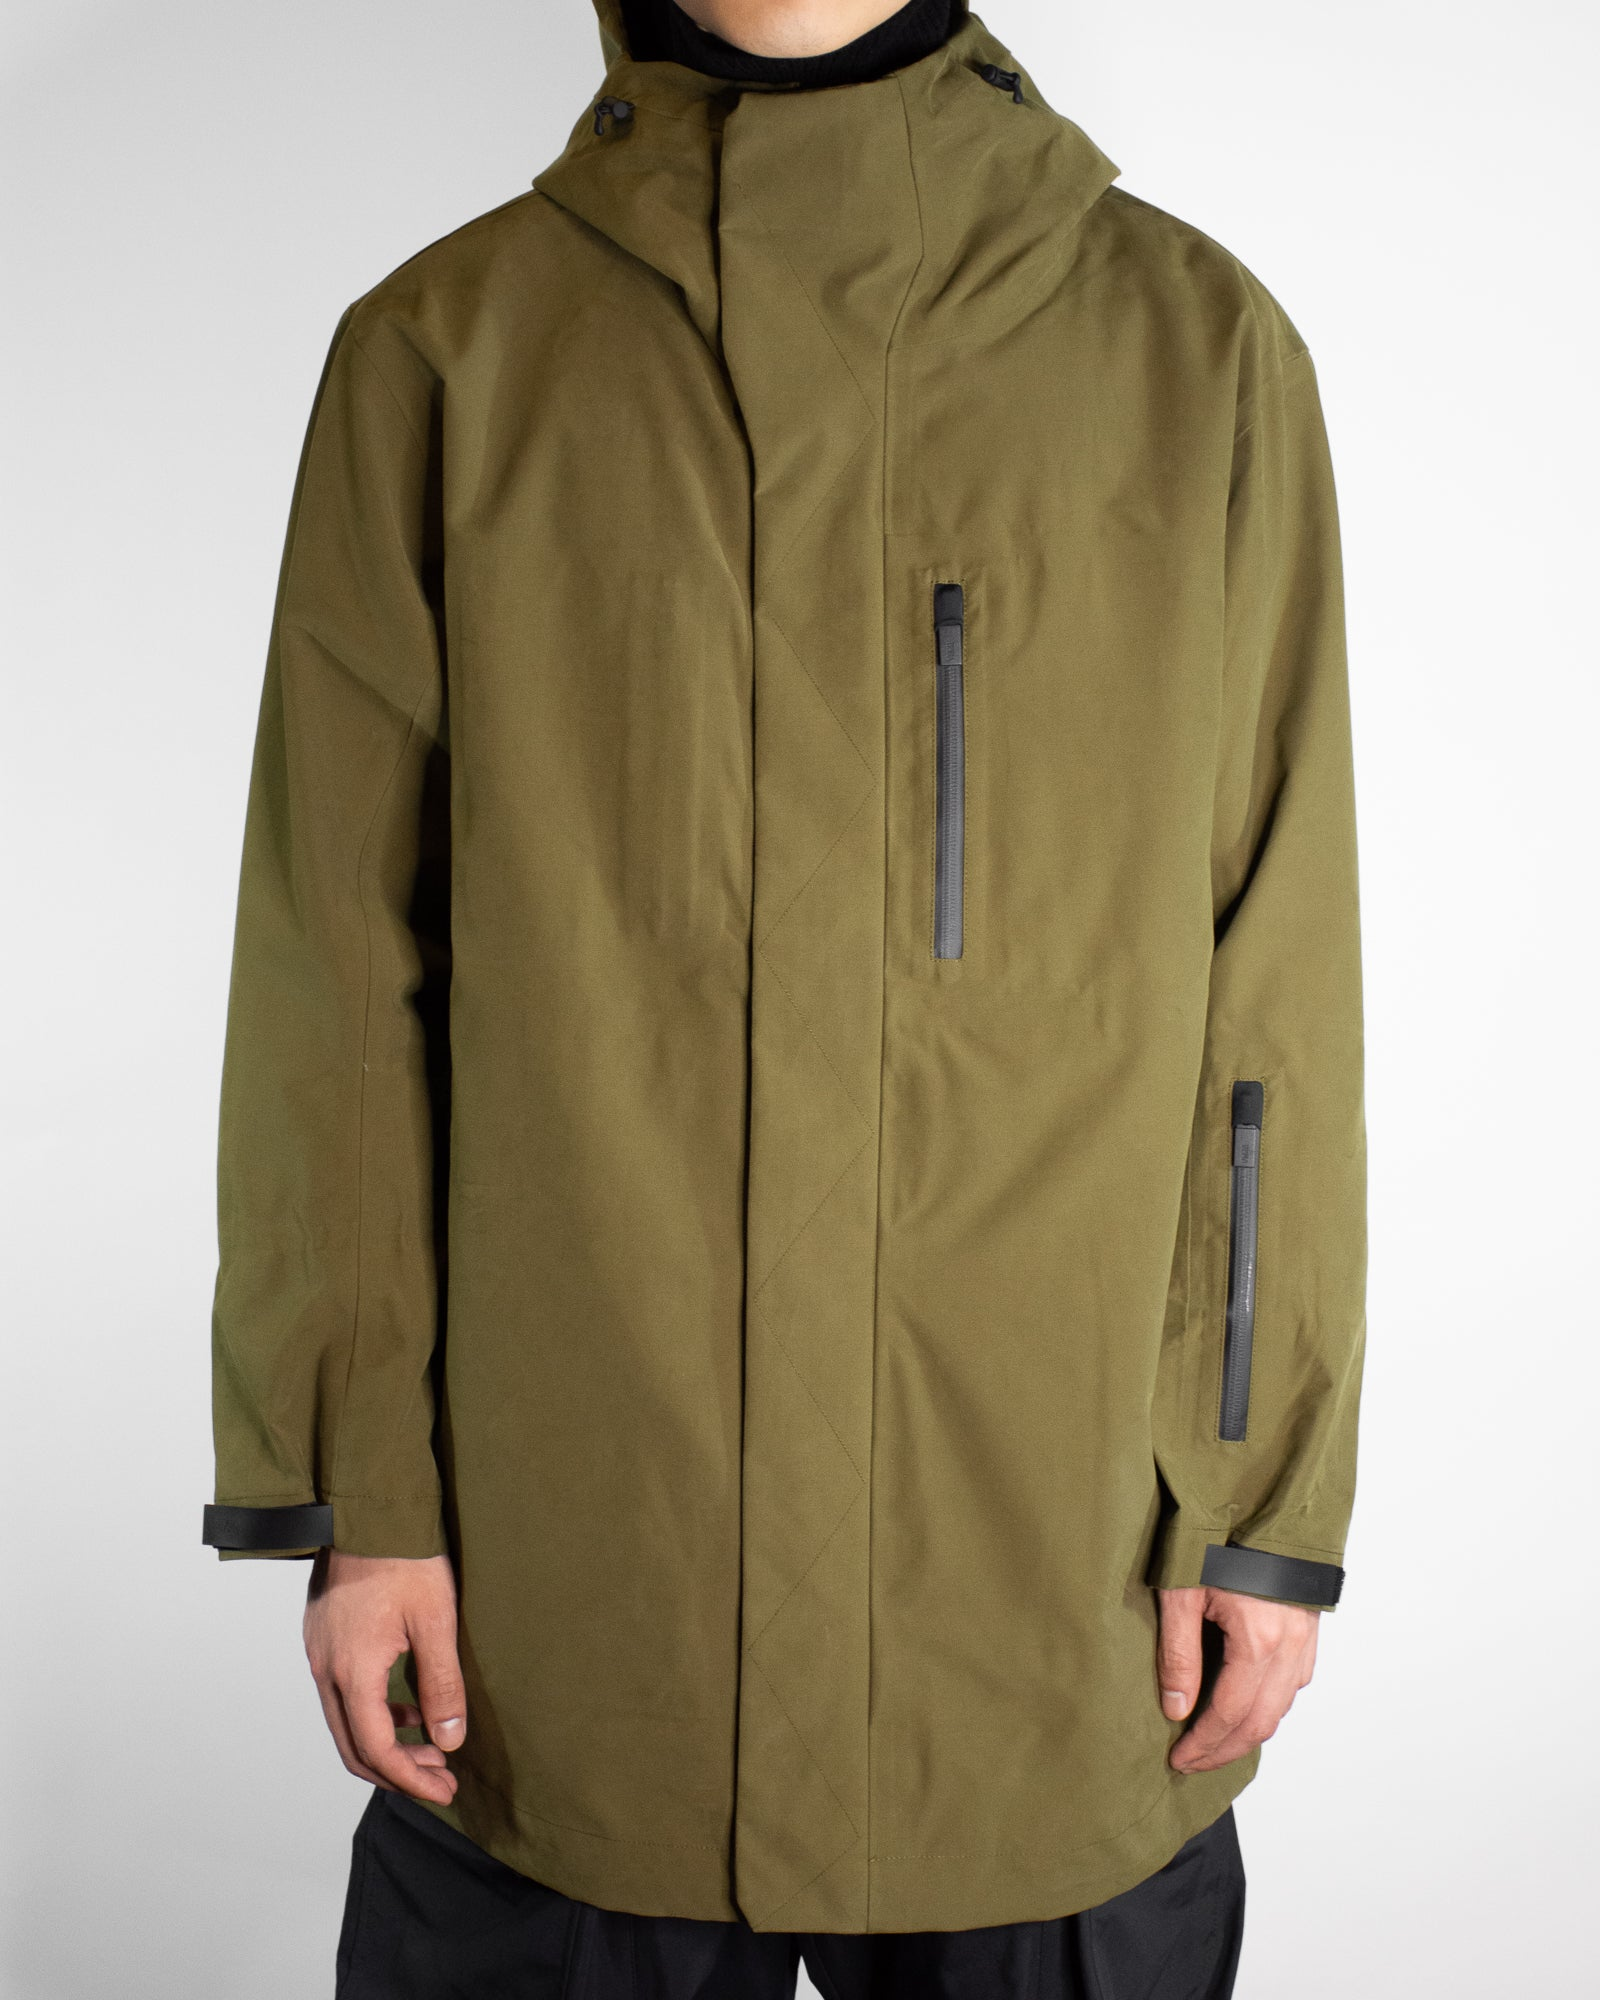 TEMPLA TEMP 3/4 SHELL JACKET